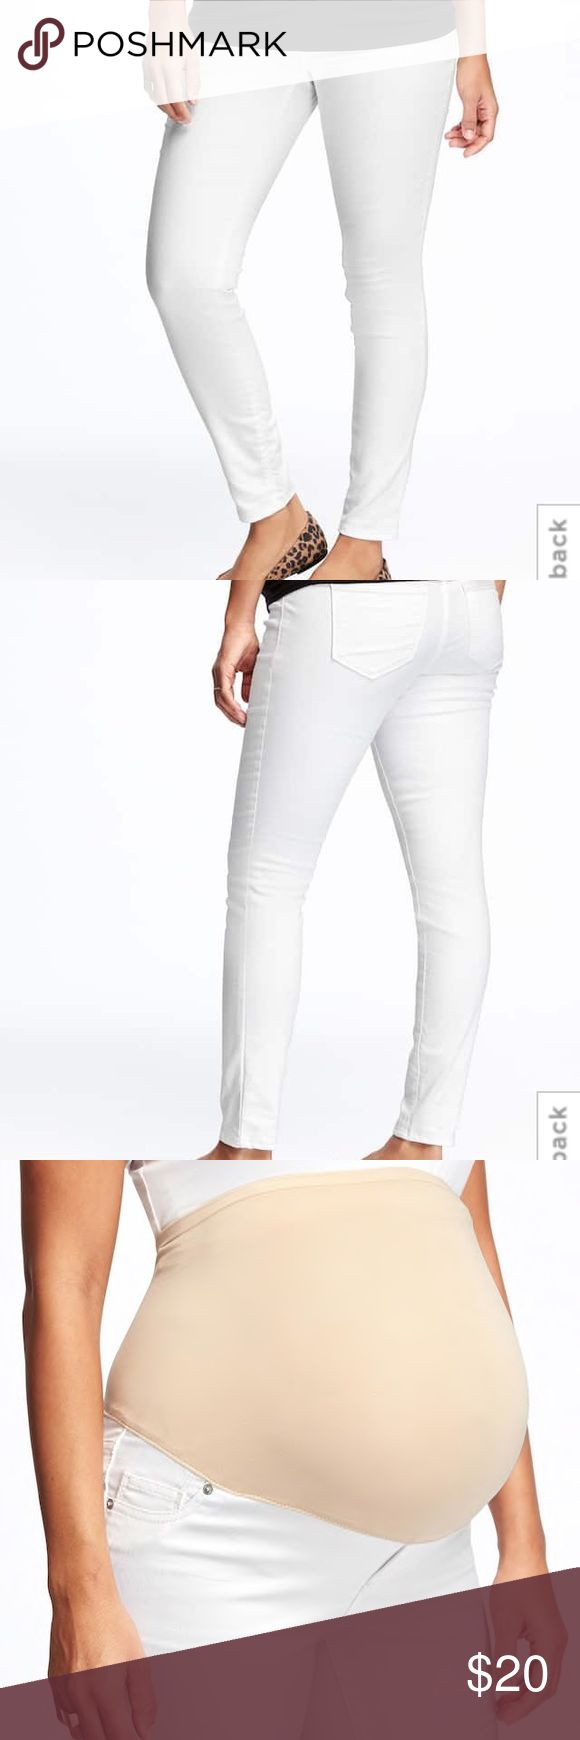 Old Navy Maternity White Skinny Jeans - Sz 10 Old Navy Maternity White Skinny Jeans - Size 10. These were purchased new this season & are not n excellent condition. Old Navy Jeans Skinny